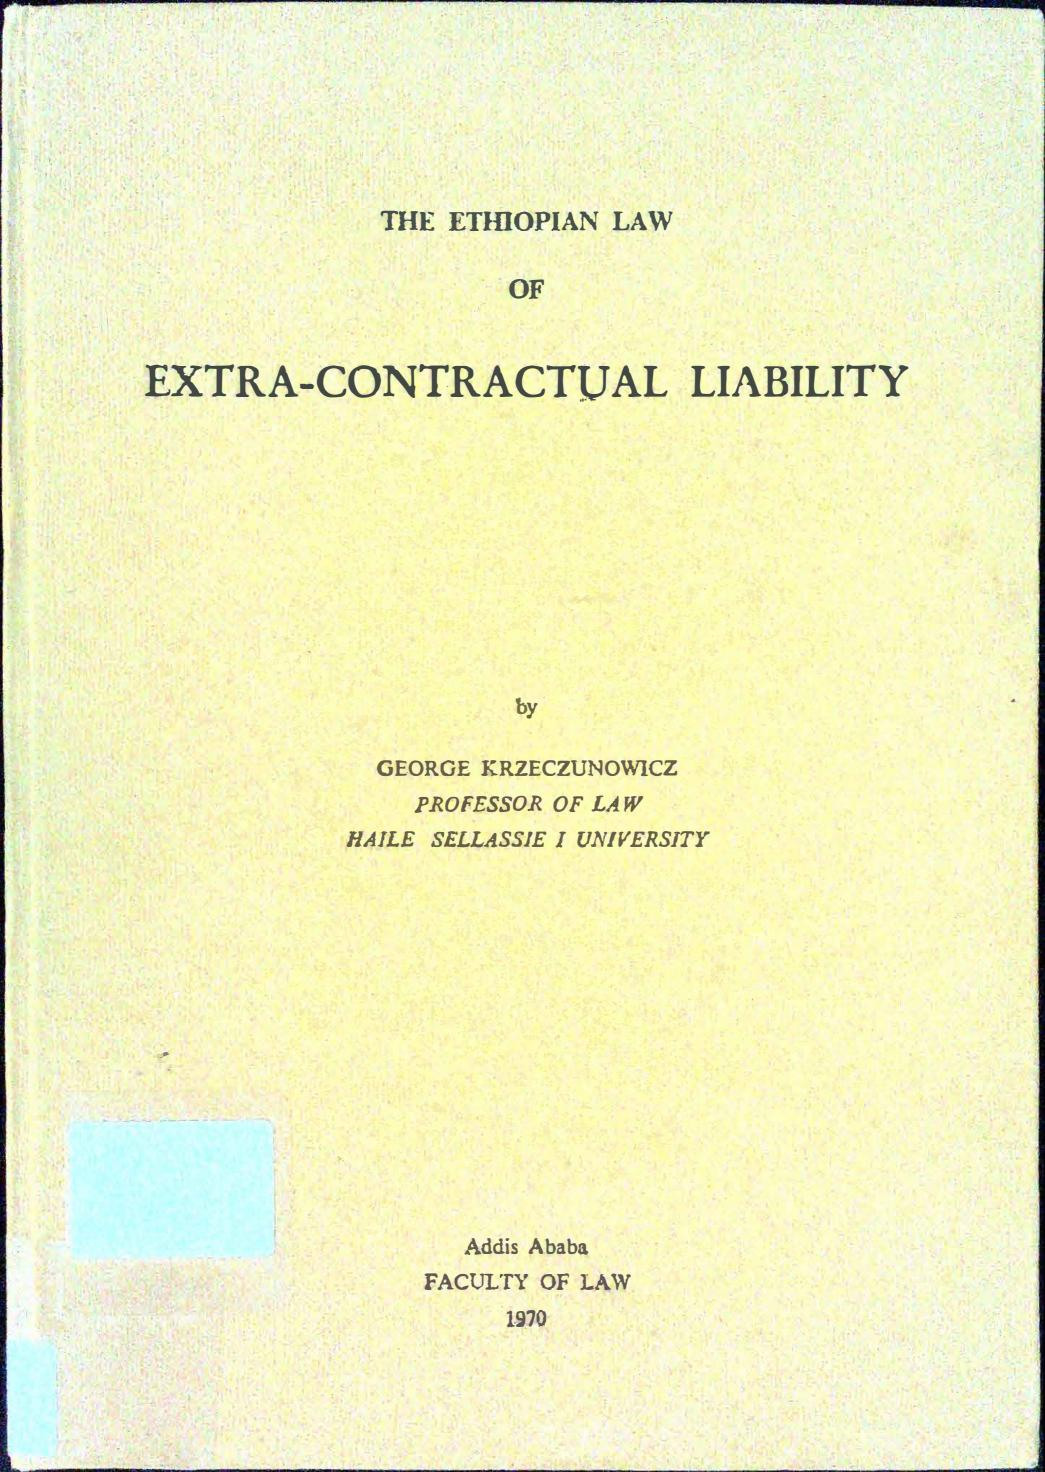 The Ethiopian Law of Extra-Contractual Liability by George